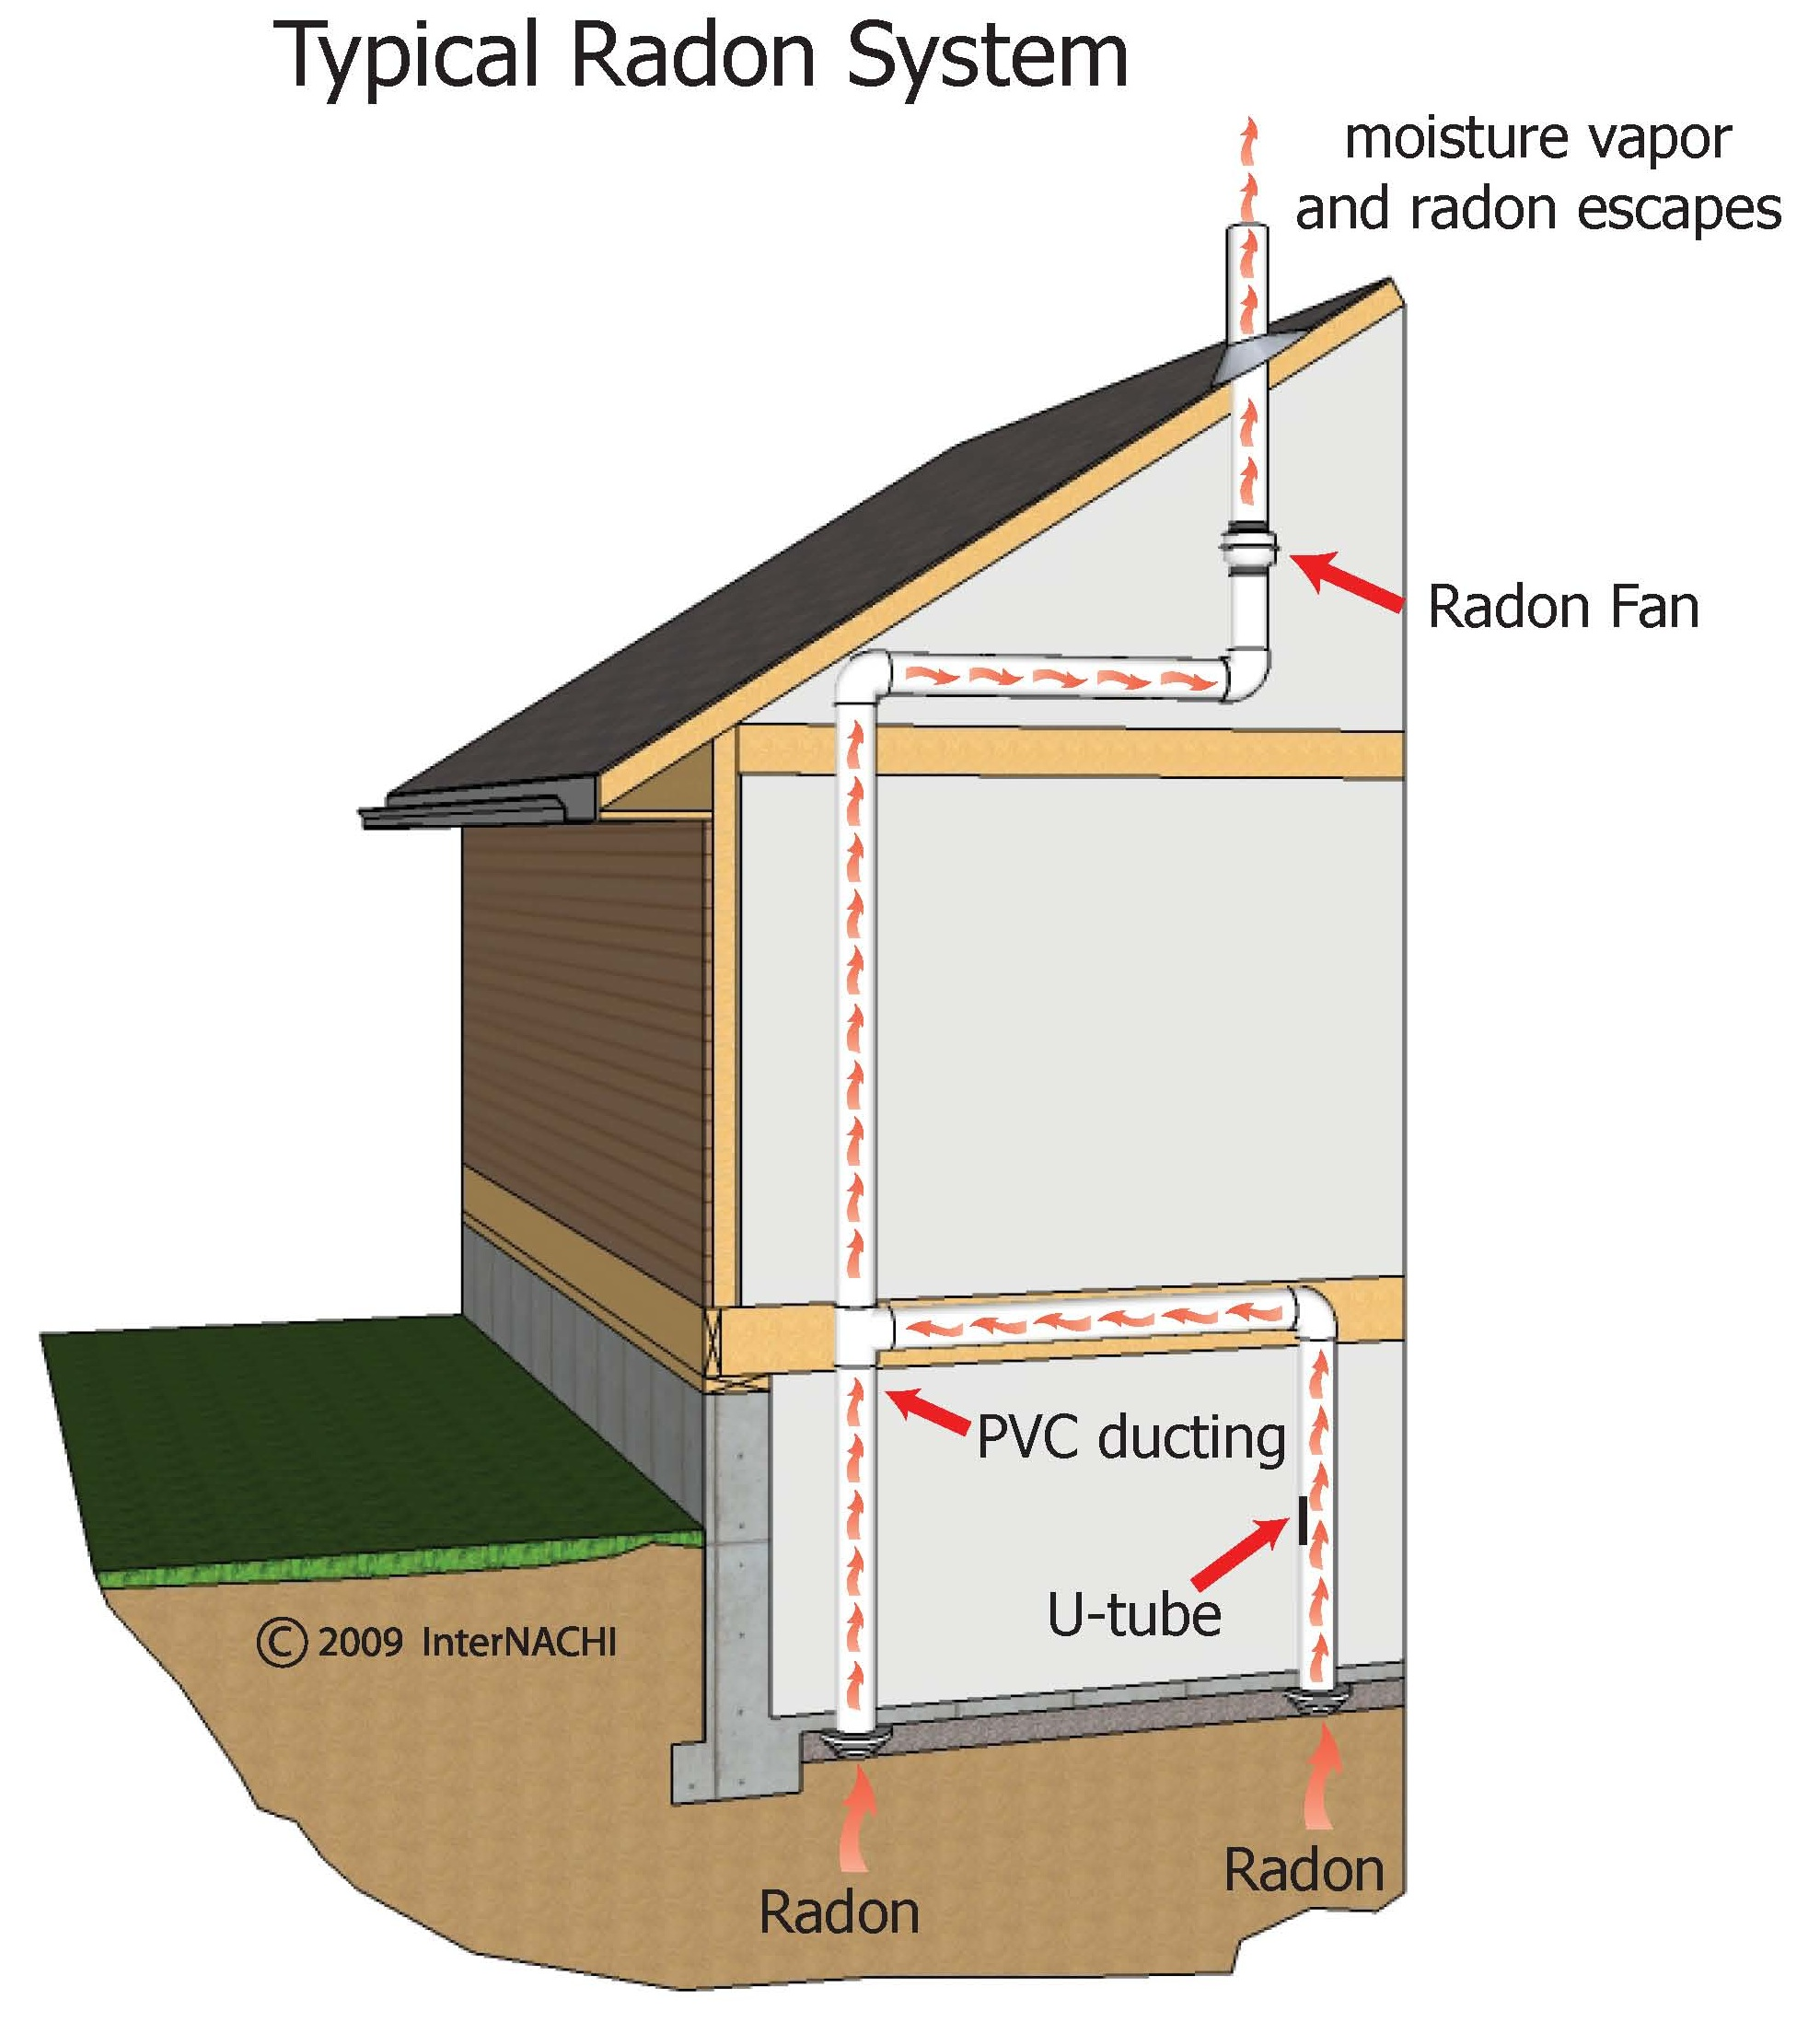 Radon radon test homeguard inspections™ greater wasatch front radian diagram at love-stories.co